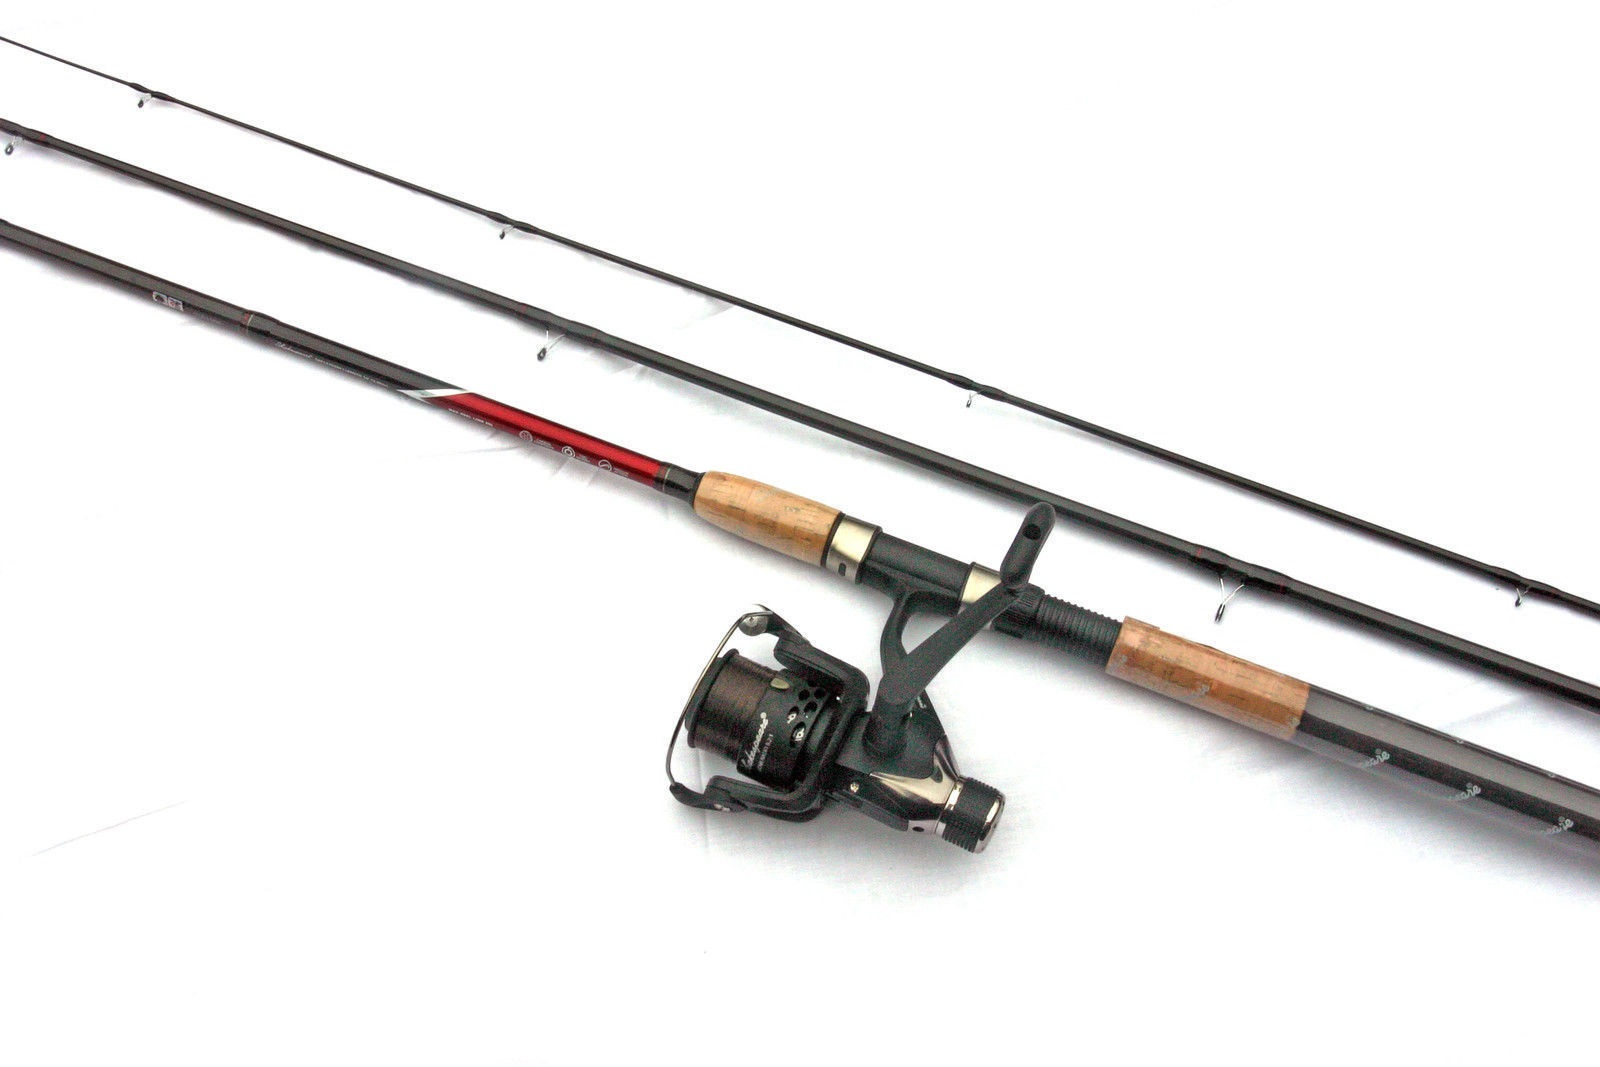 10 ft Shakespeare  Match Rod and Shakespeare Reel